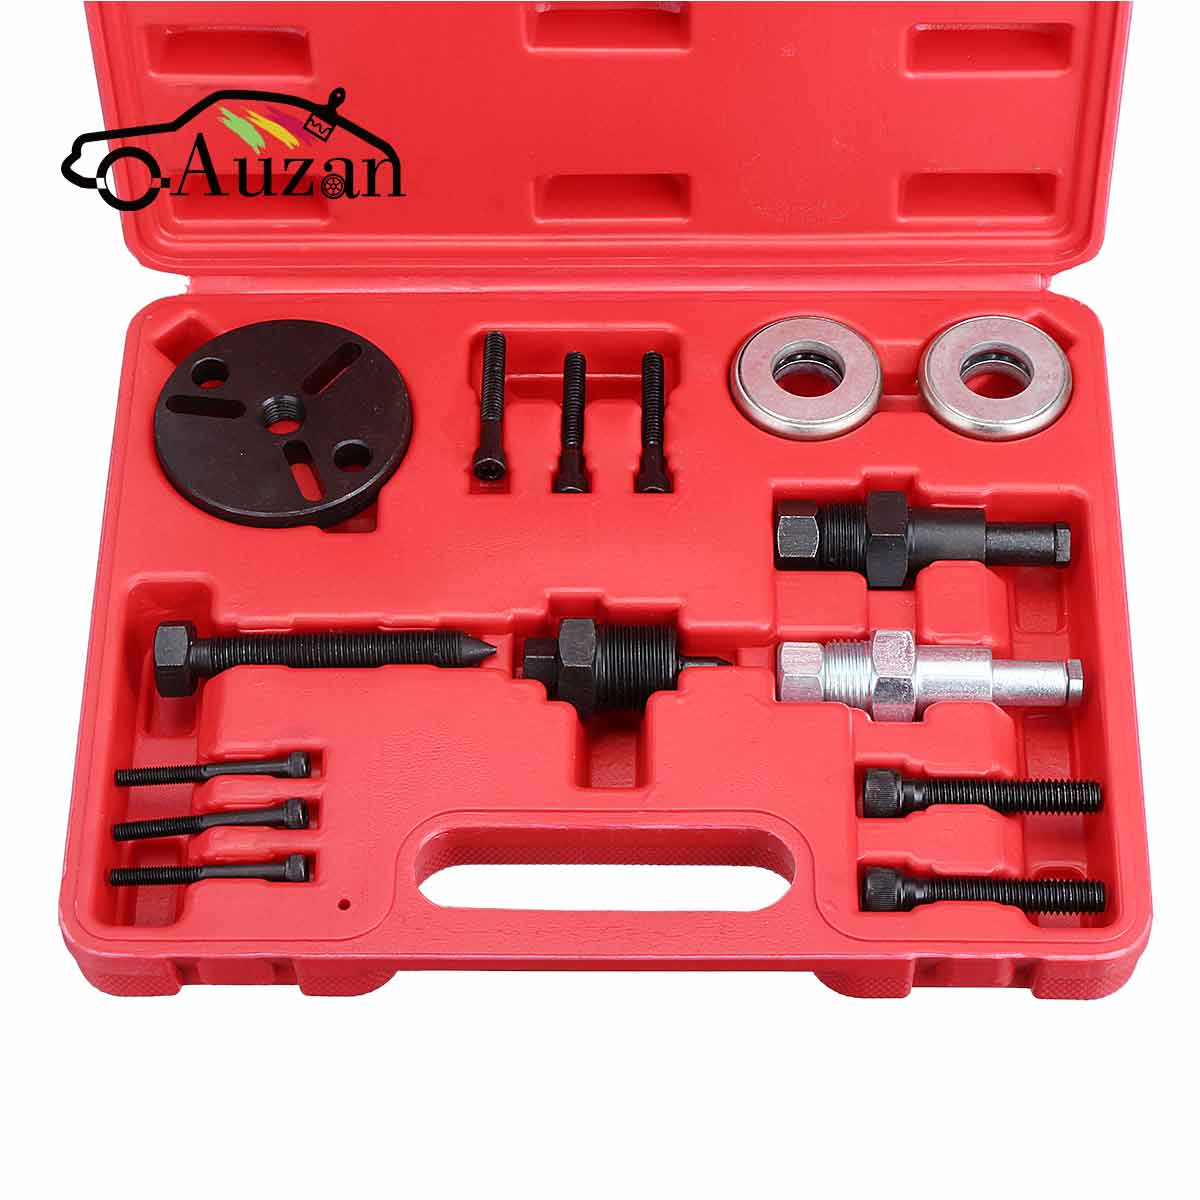 Compressor Clutch Remover Puller Installer Installation Air Condition Tool Kit